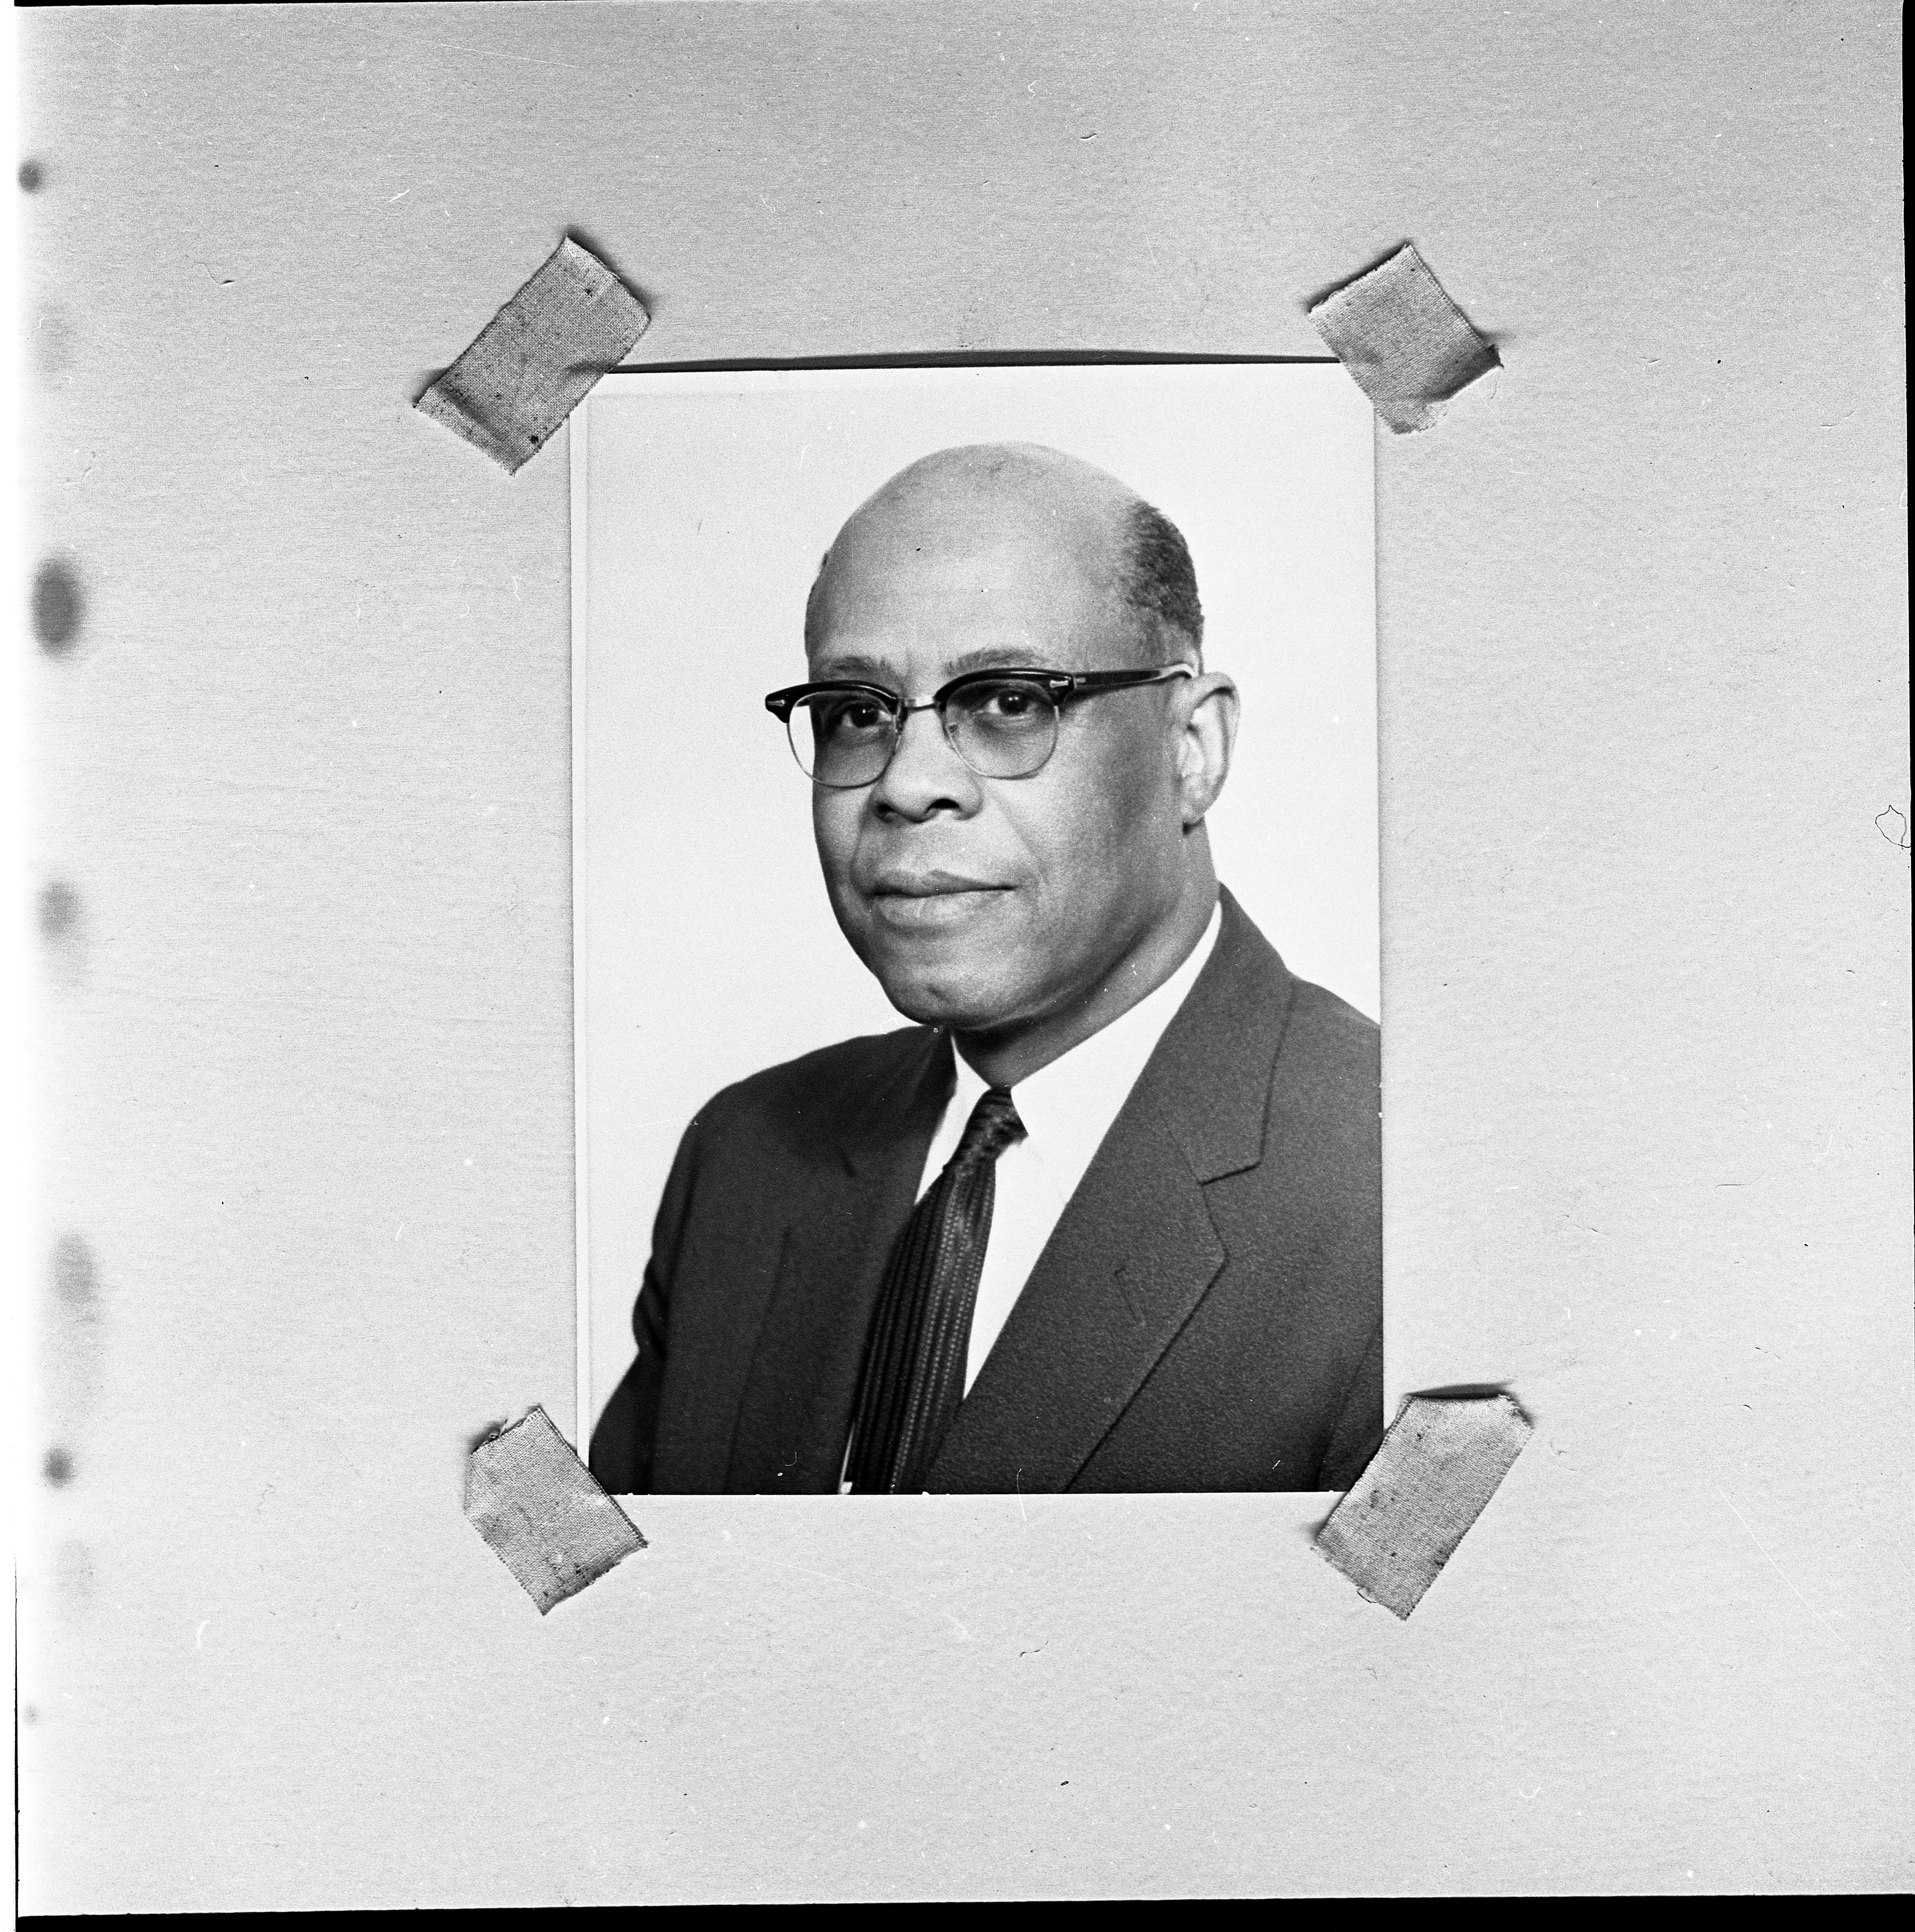 Amos Washington, Ypsilanti City Official, February 1967 image